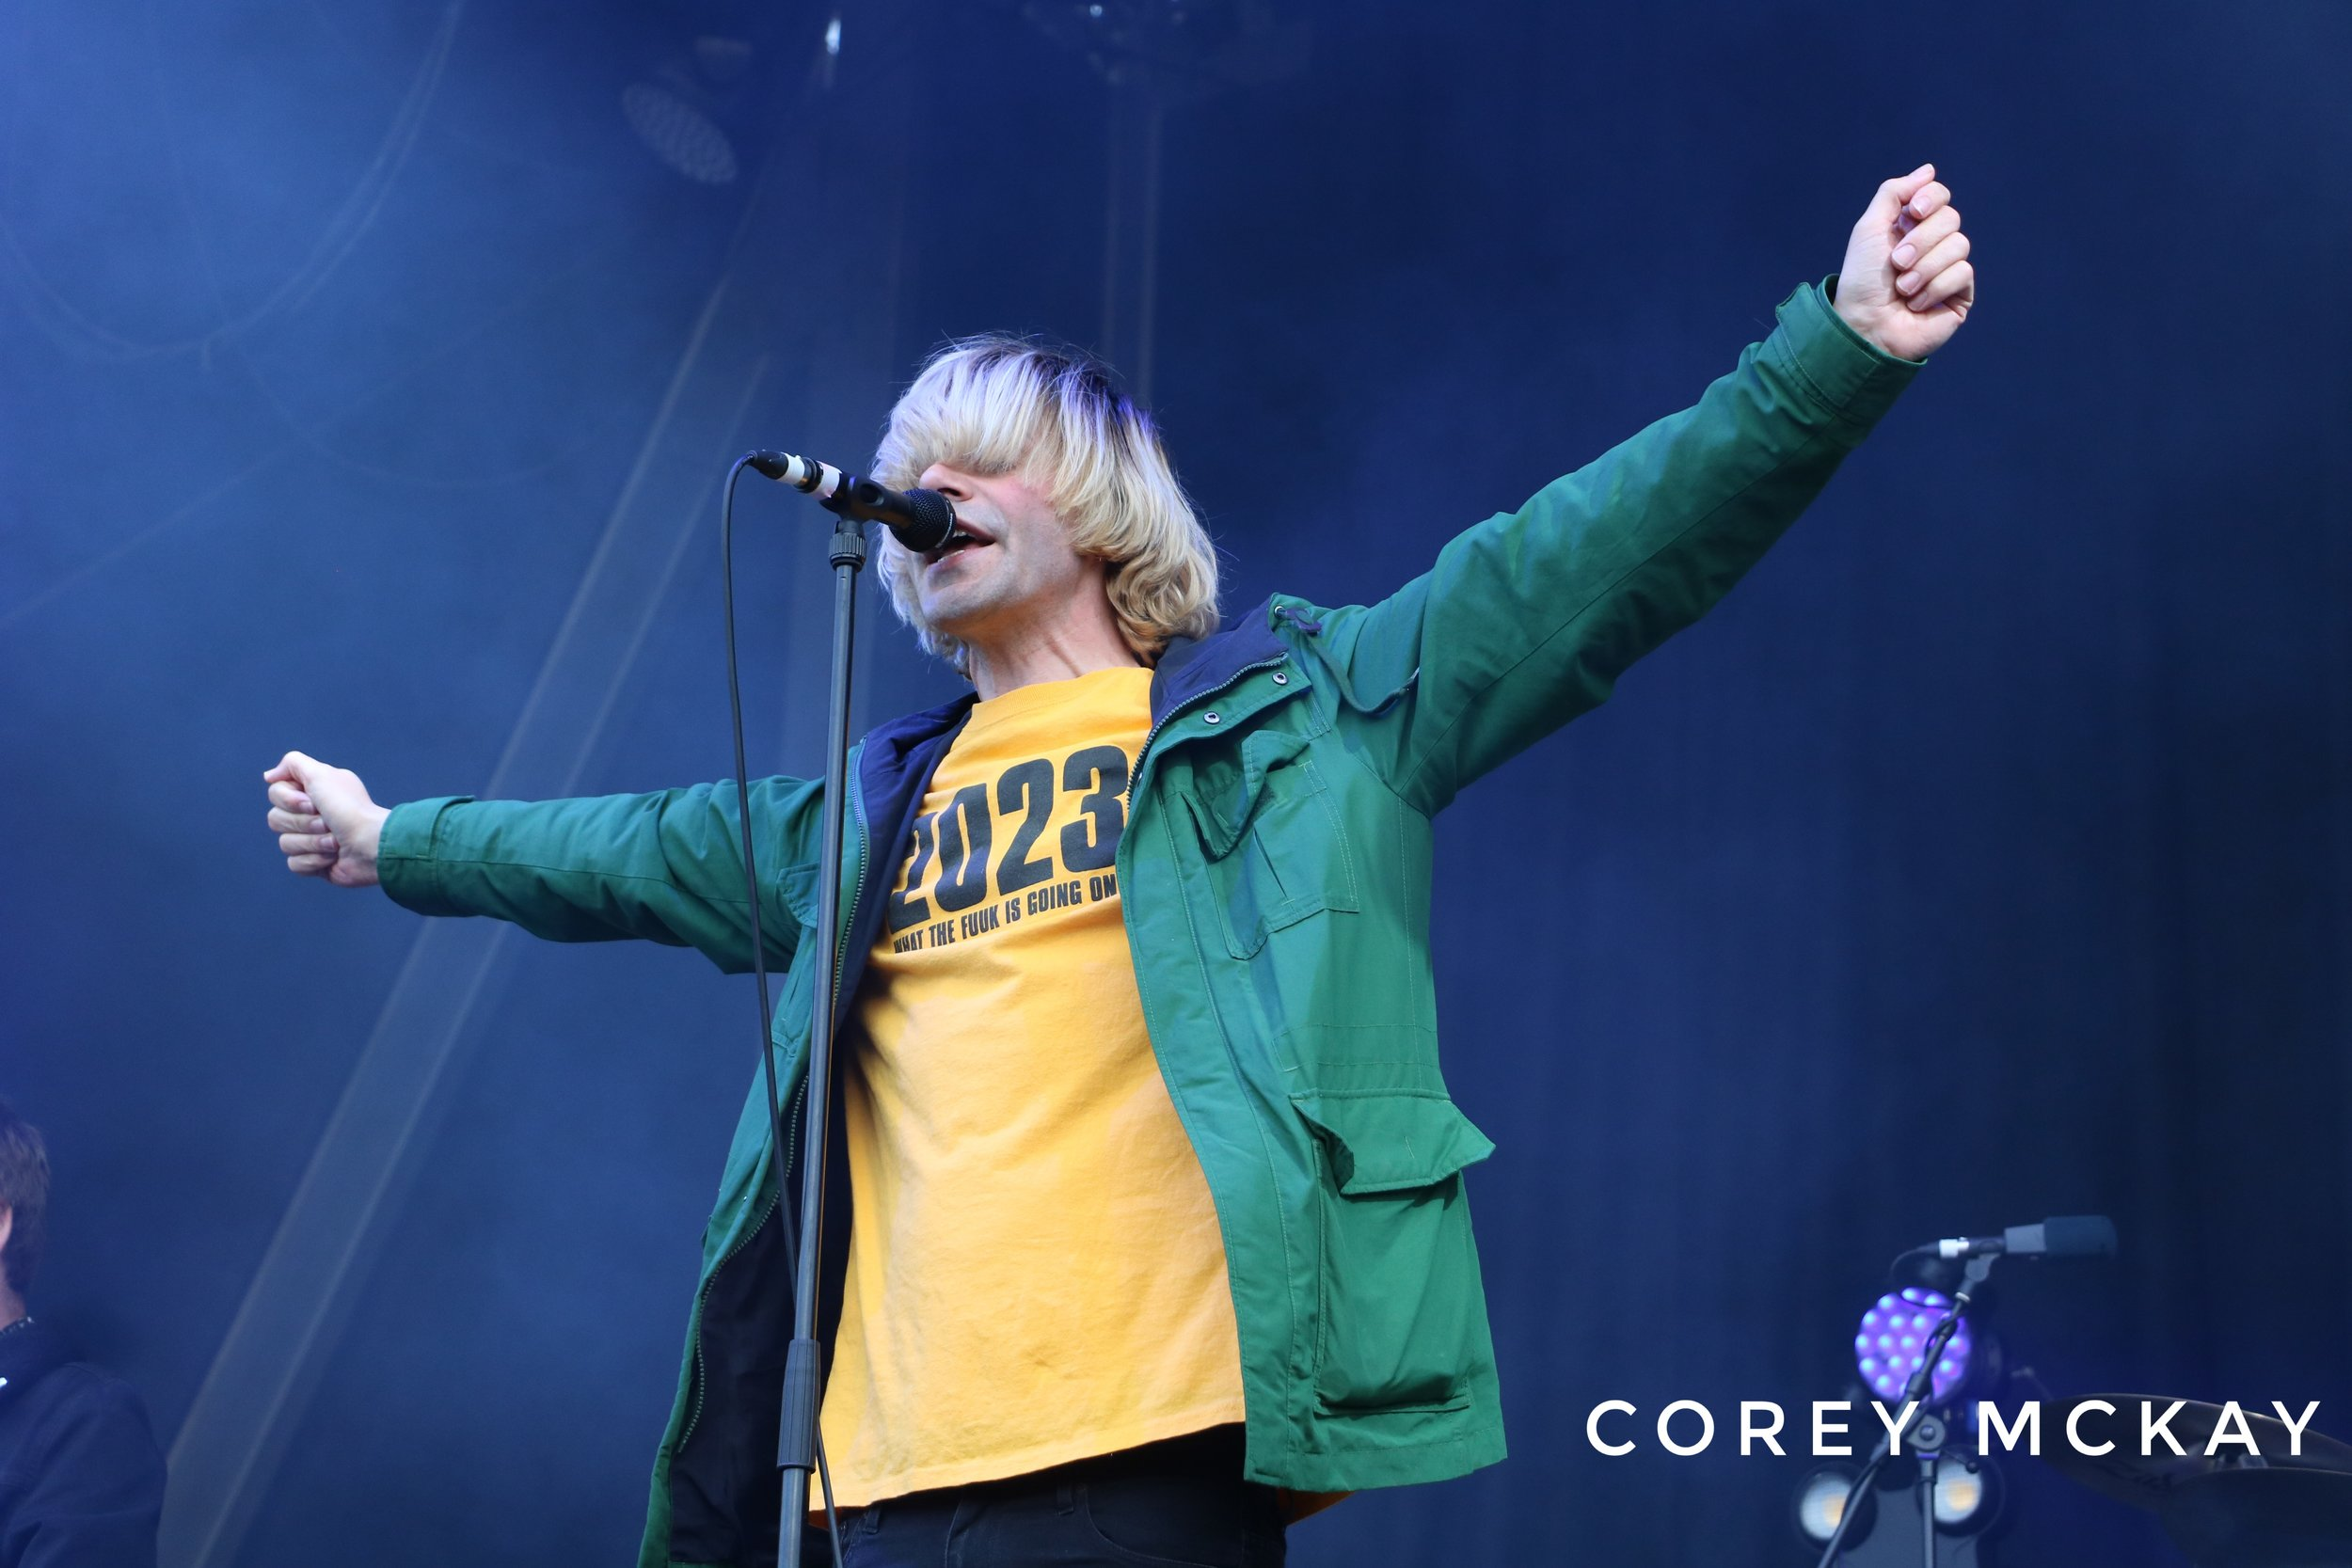 THE CHARLATANS PERFORMING AT CARNIVAL FIXTY SIX FESTIVAL 2017 - 13/08/2017  PICTURE BY: COREY MCKAY PHOTOGRAPHY